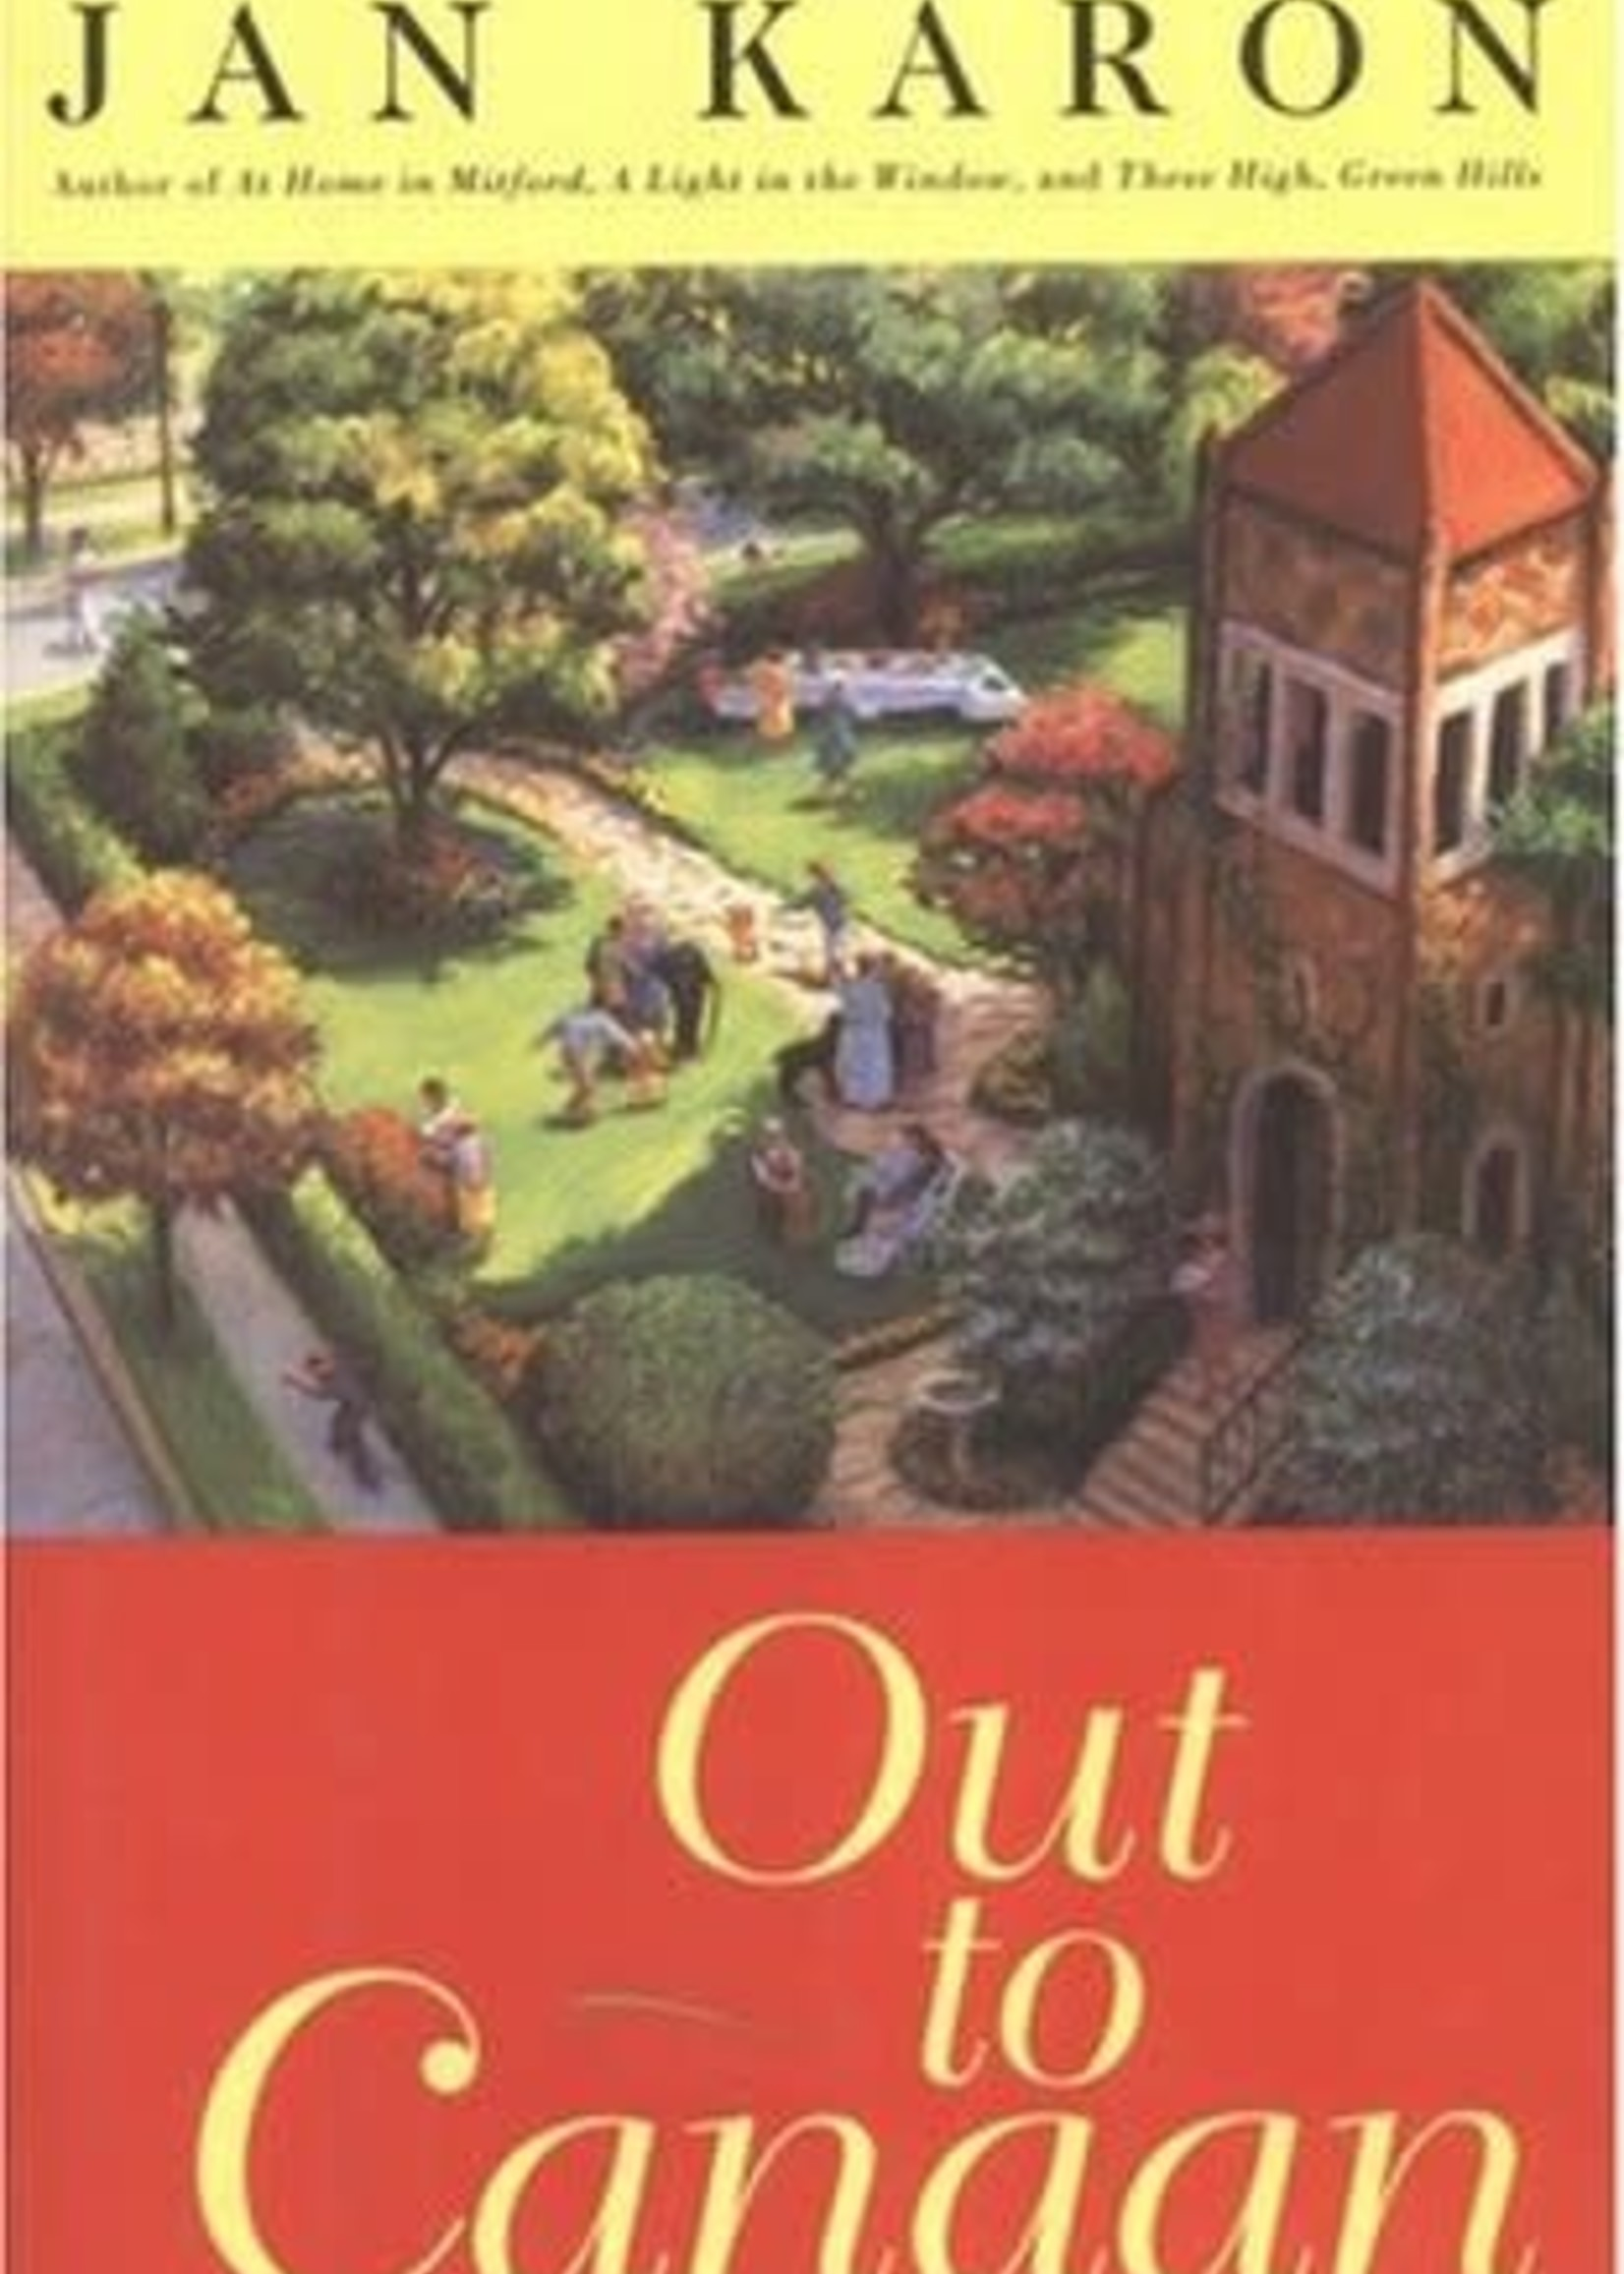 USED - Out of Canaan by Jan Karon